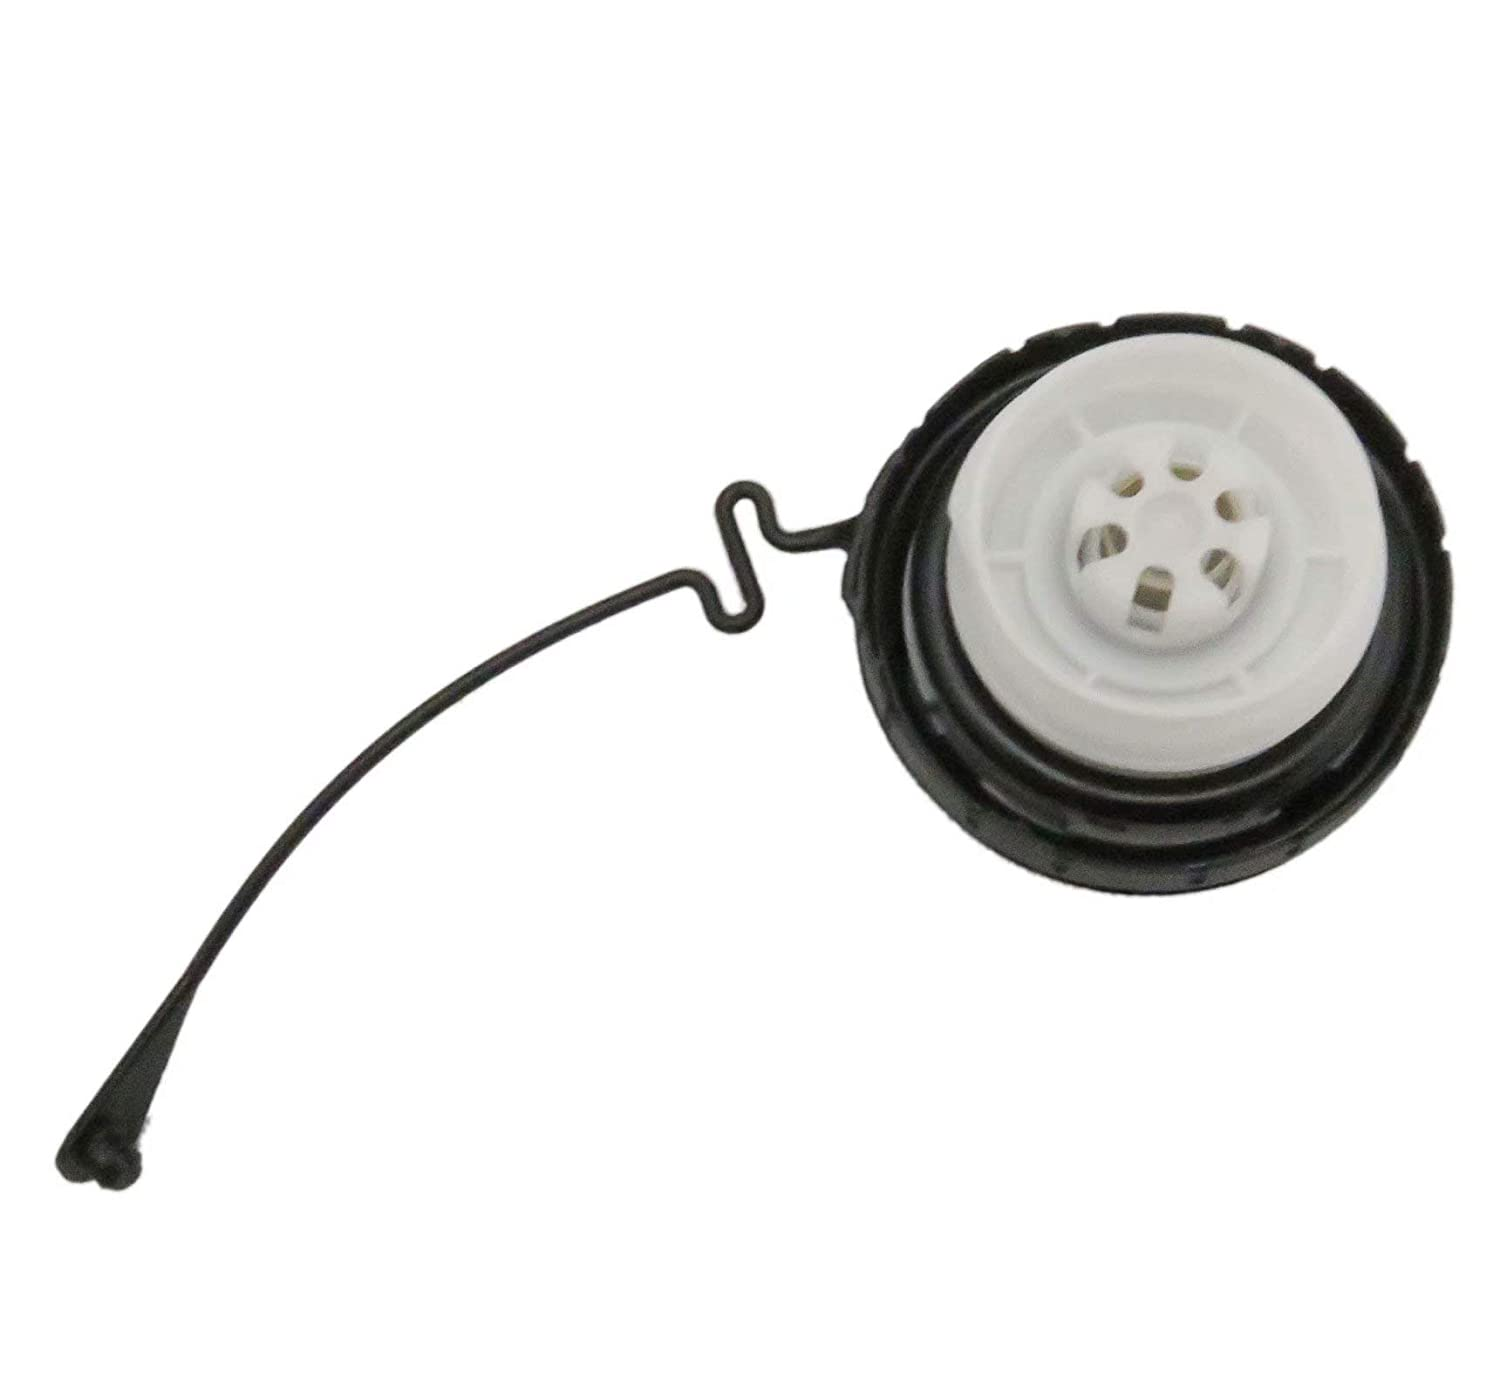 Fuel Tank Gas Cap Lid Tether Threaded Style 77300-06040 For 2010-2013 Toyota 4runner//2007-2012 Toyota Avalon//2007-2012 Toyota Camry//2006-2013 Toyota Corolla